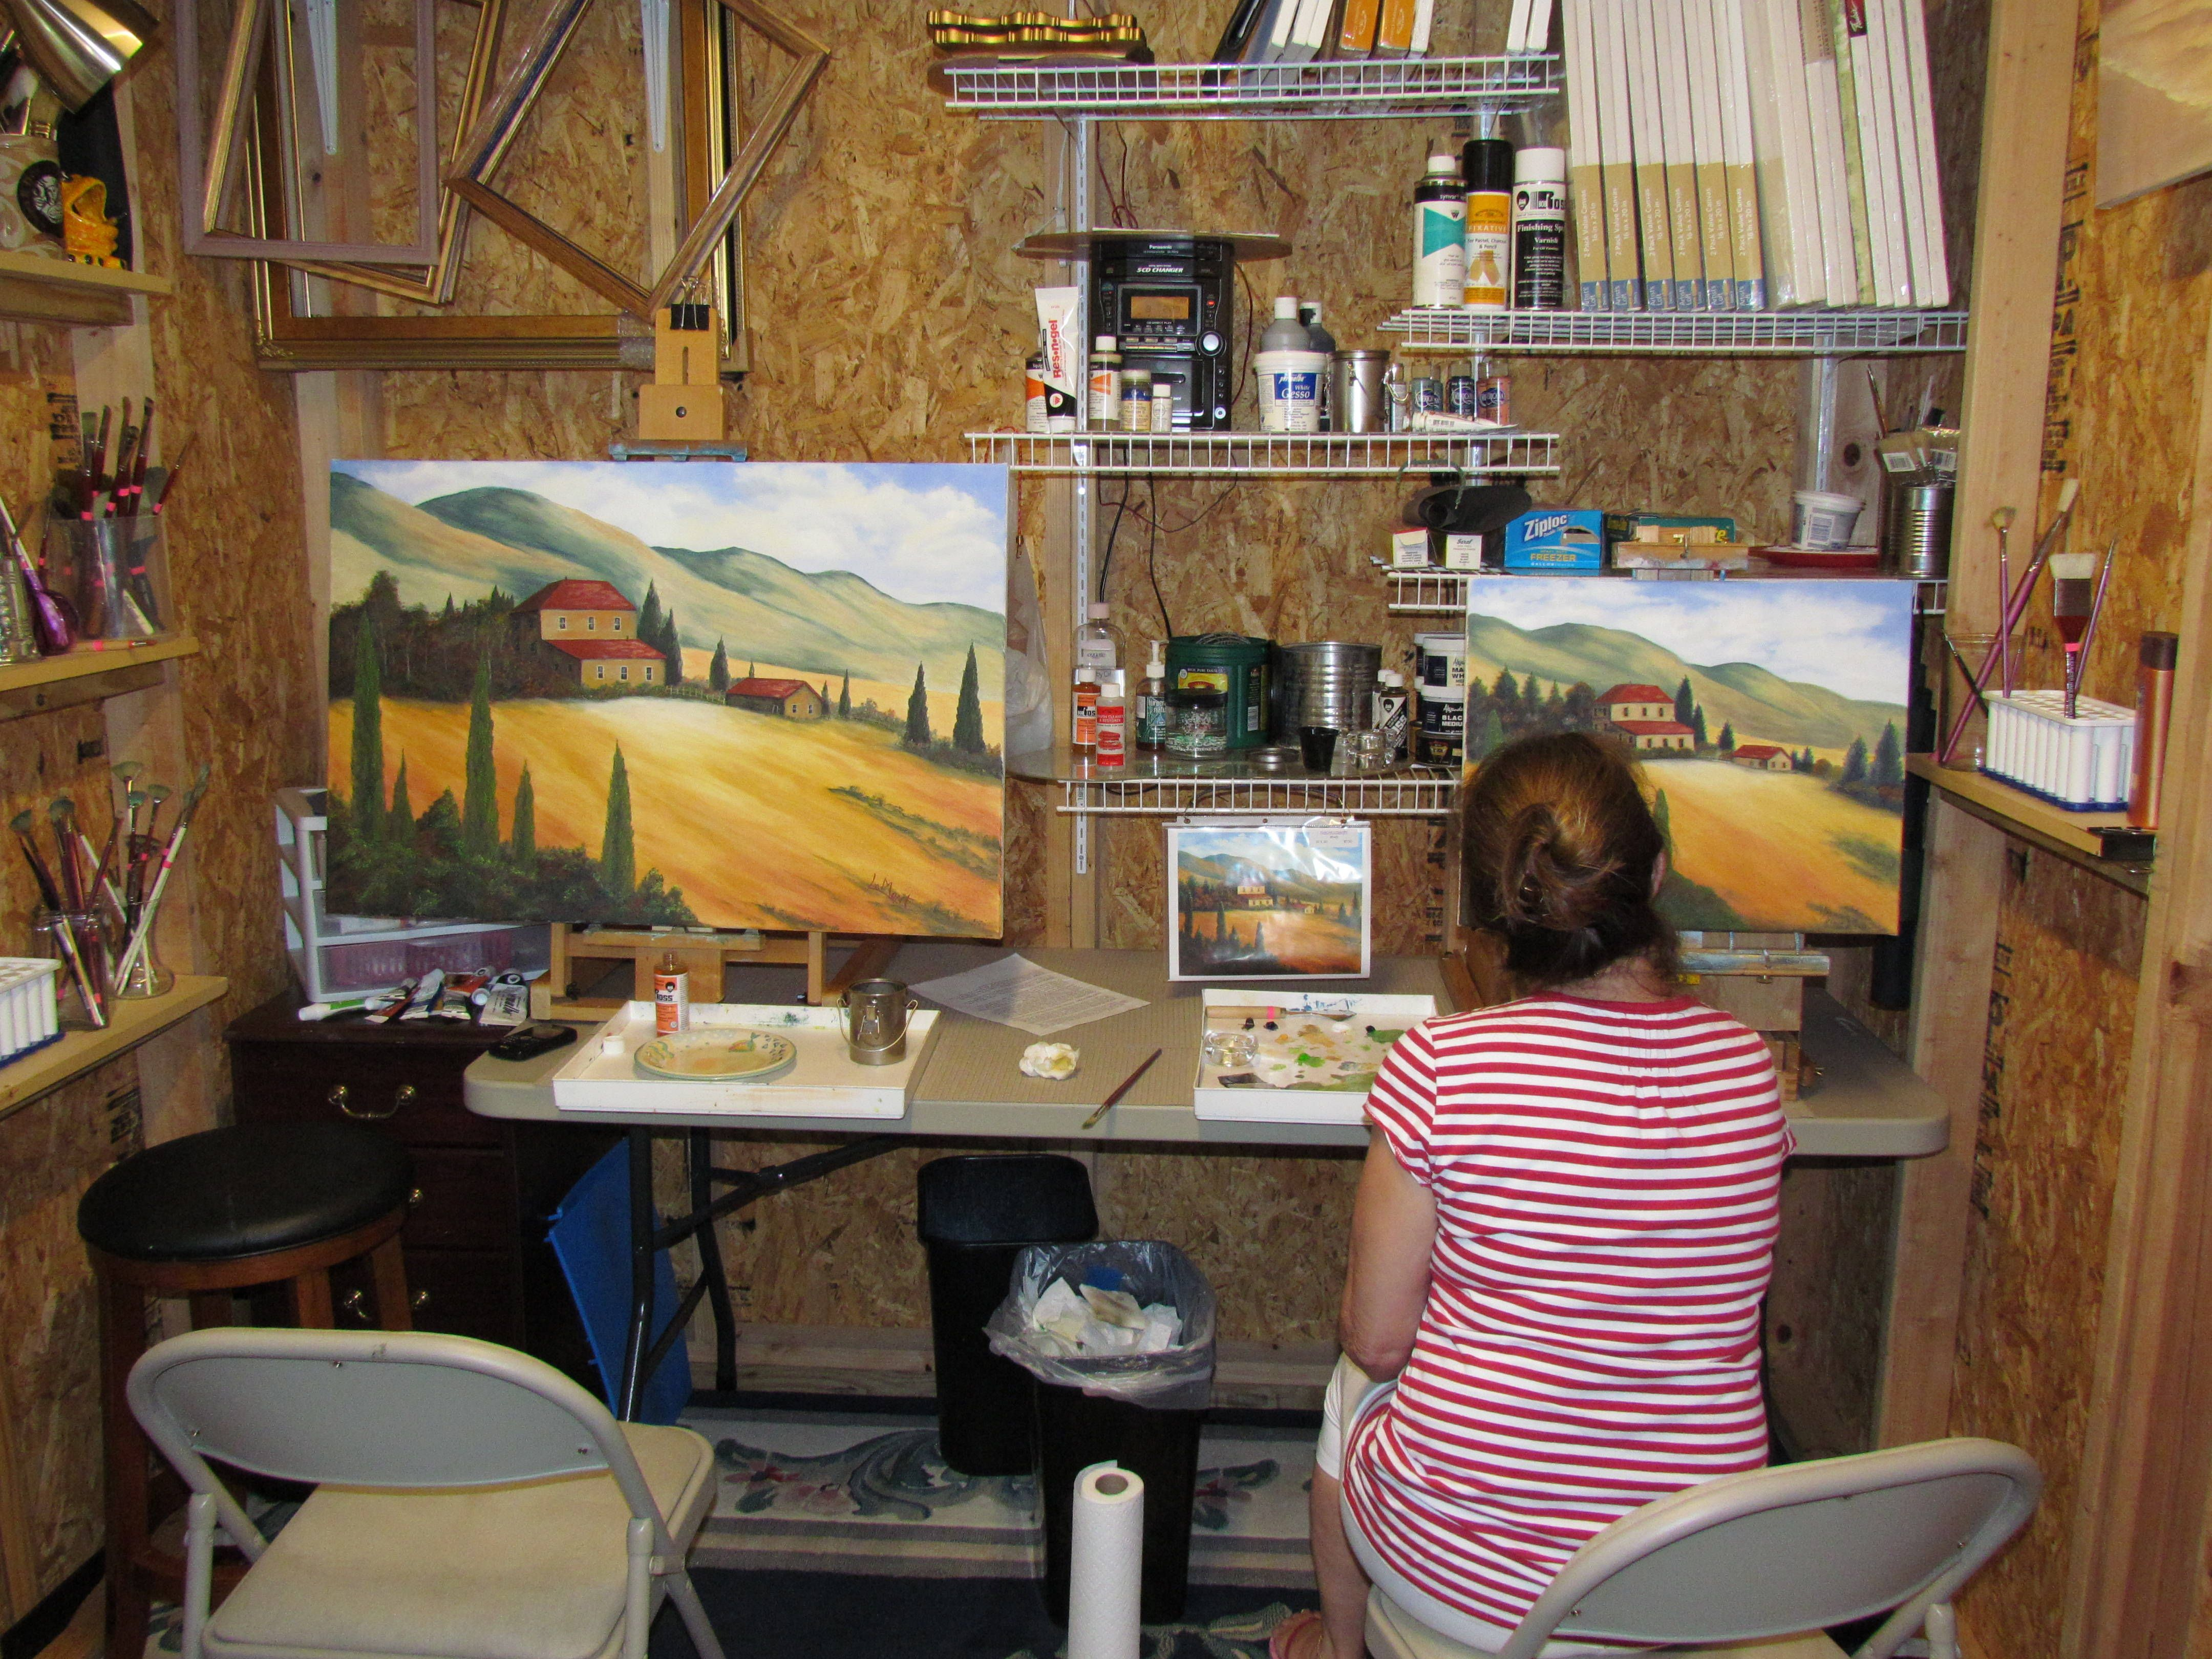 17 Best images about Future Art Studio Ideas on Pinterest   Local artists  Art  studios and Hanging art. 17 Best images about Future Art Studio Ideas on Pinterest   Local